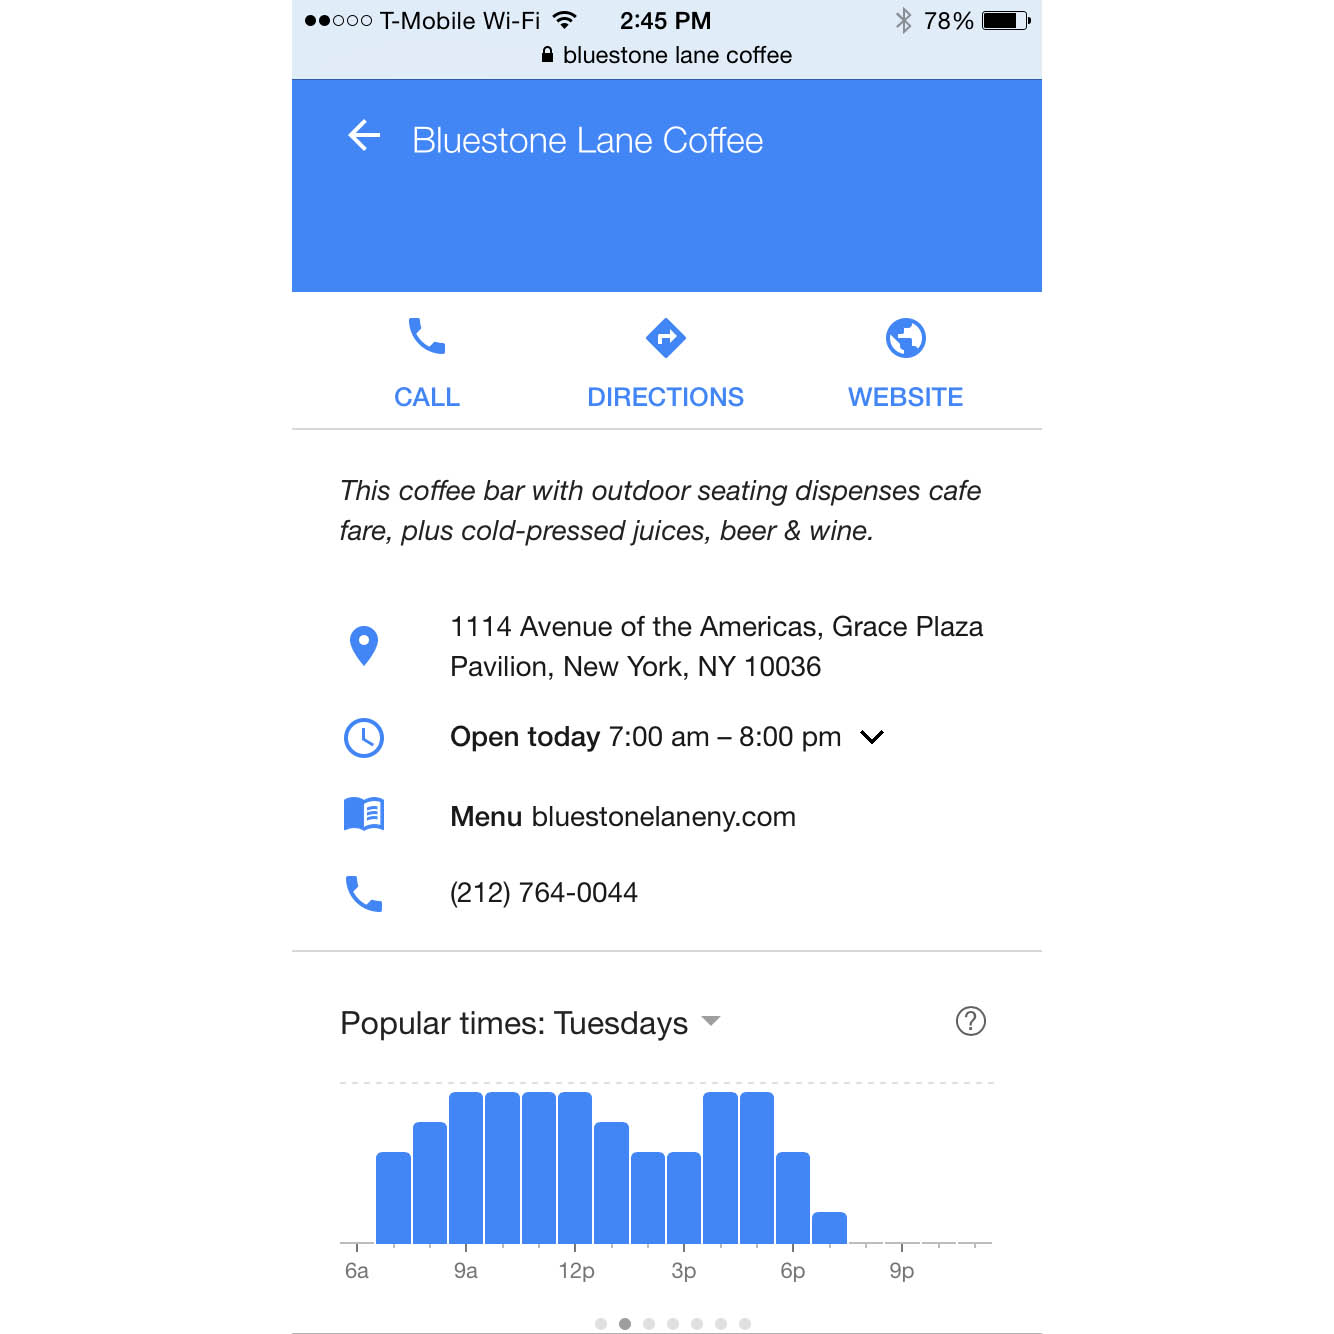 Google Tracks Us So Much It Can Now Tell Us When Restaurants and Bars Are Busiest